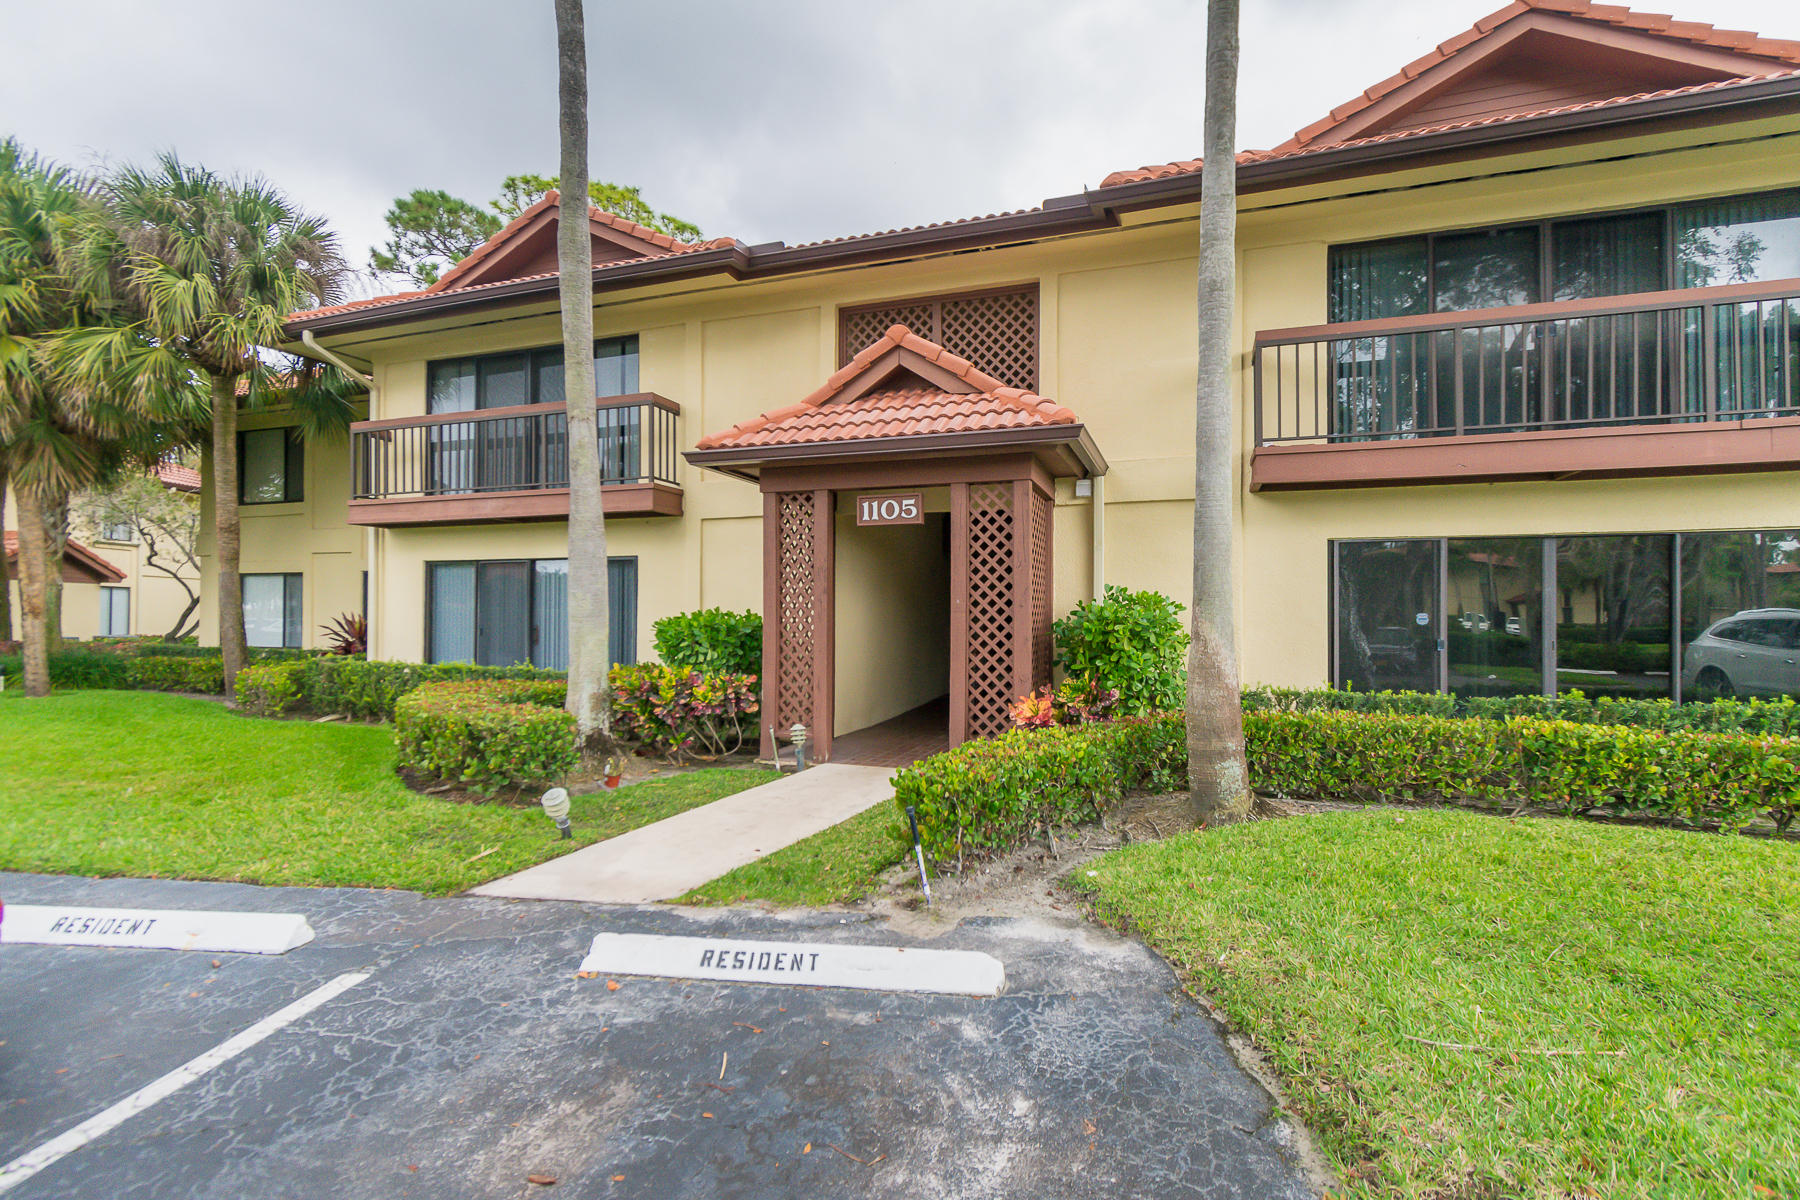 1105 Duncan Circle 202, Palm Beach Gardens, Florida 33418, 2 Bedrooms Bedrooms, ,2 BathroomsBathrooms,A,Condominium,Duncan,RX-10520807